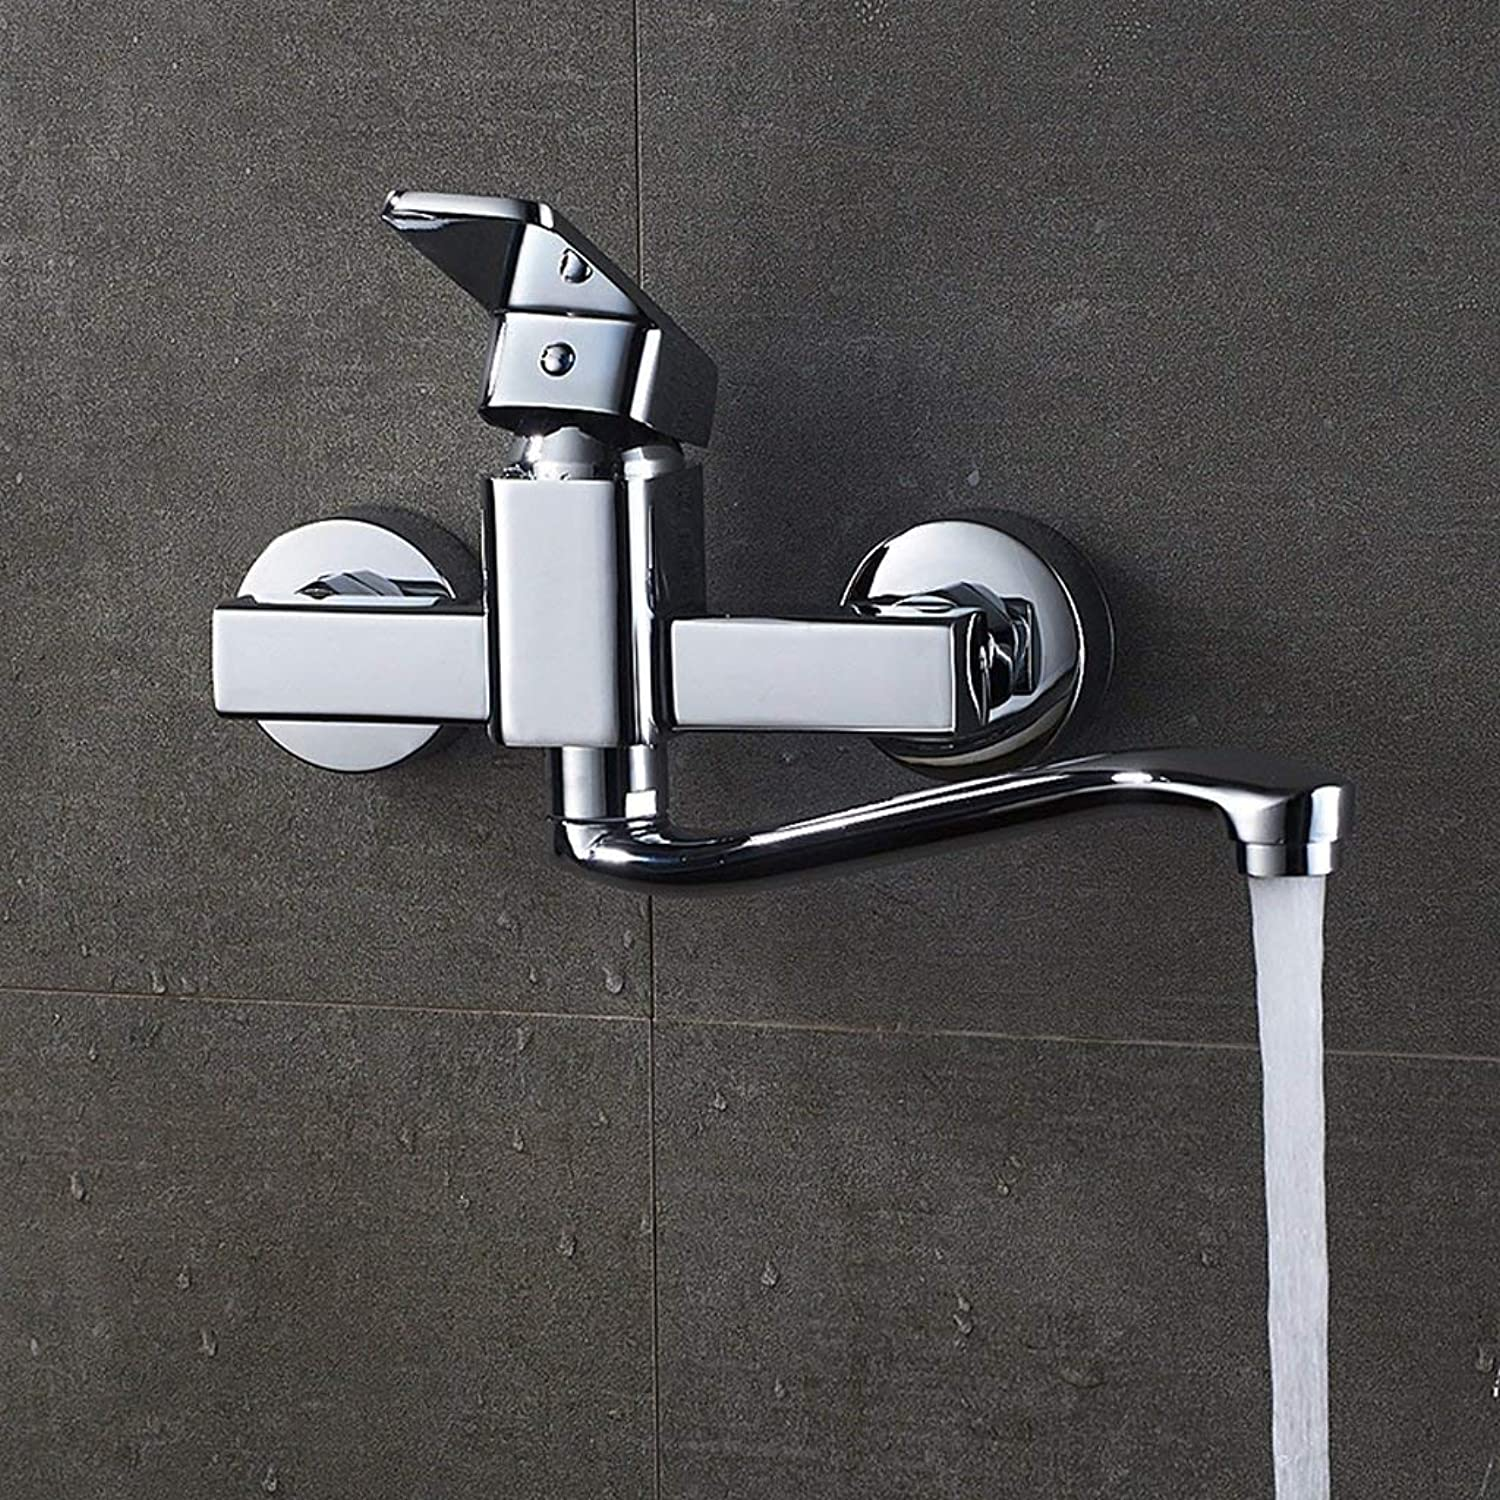 Bathroom Basin Faucets Single Handle Hot And Cold Tap Mixer Washbasin Faucets